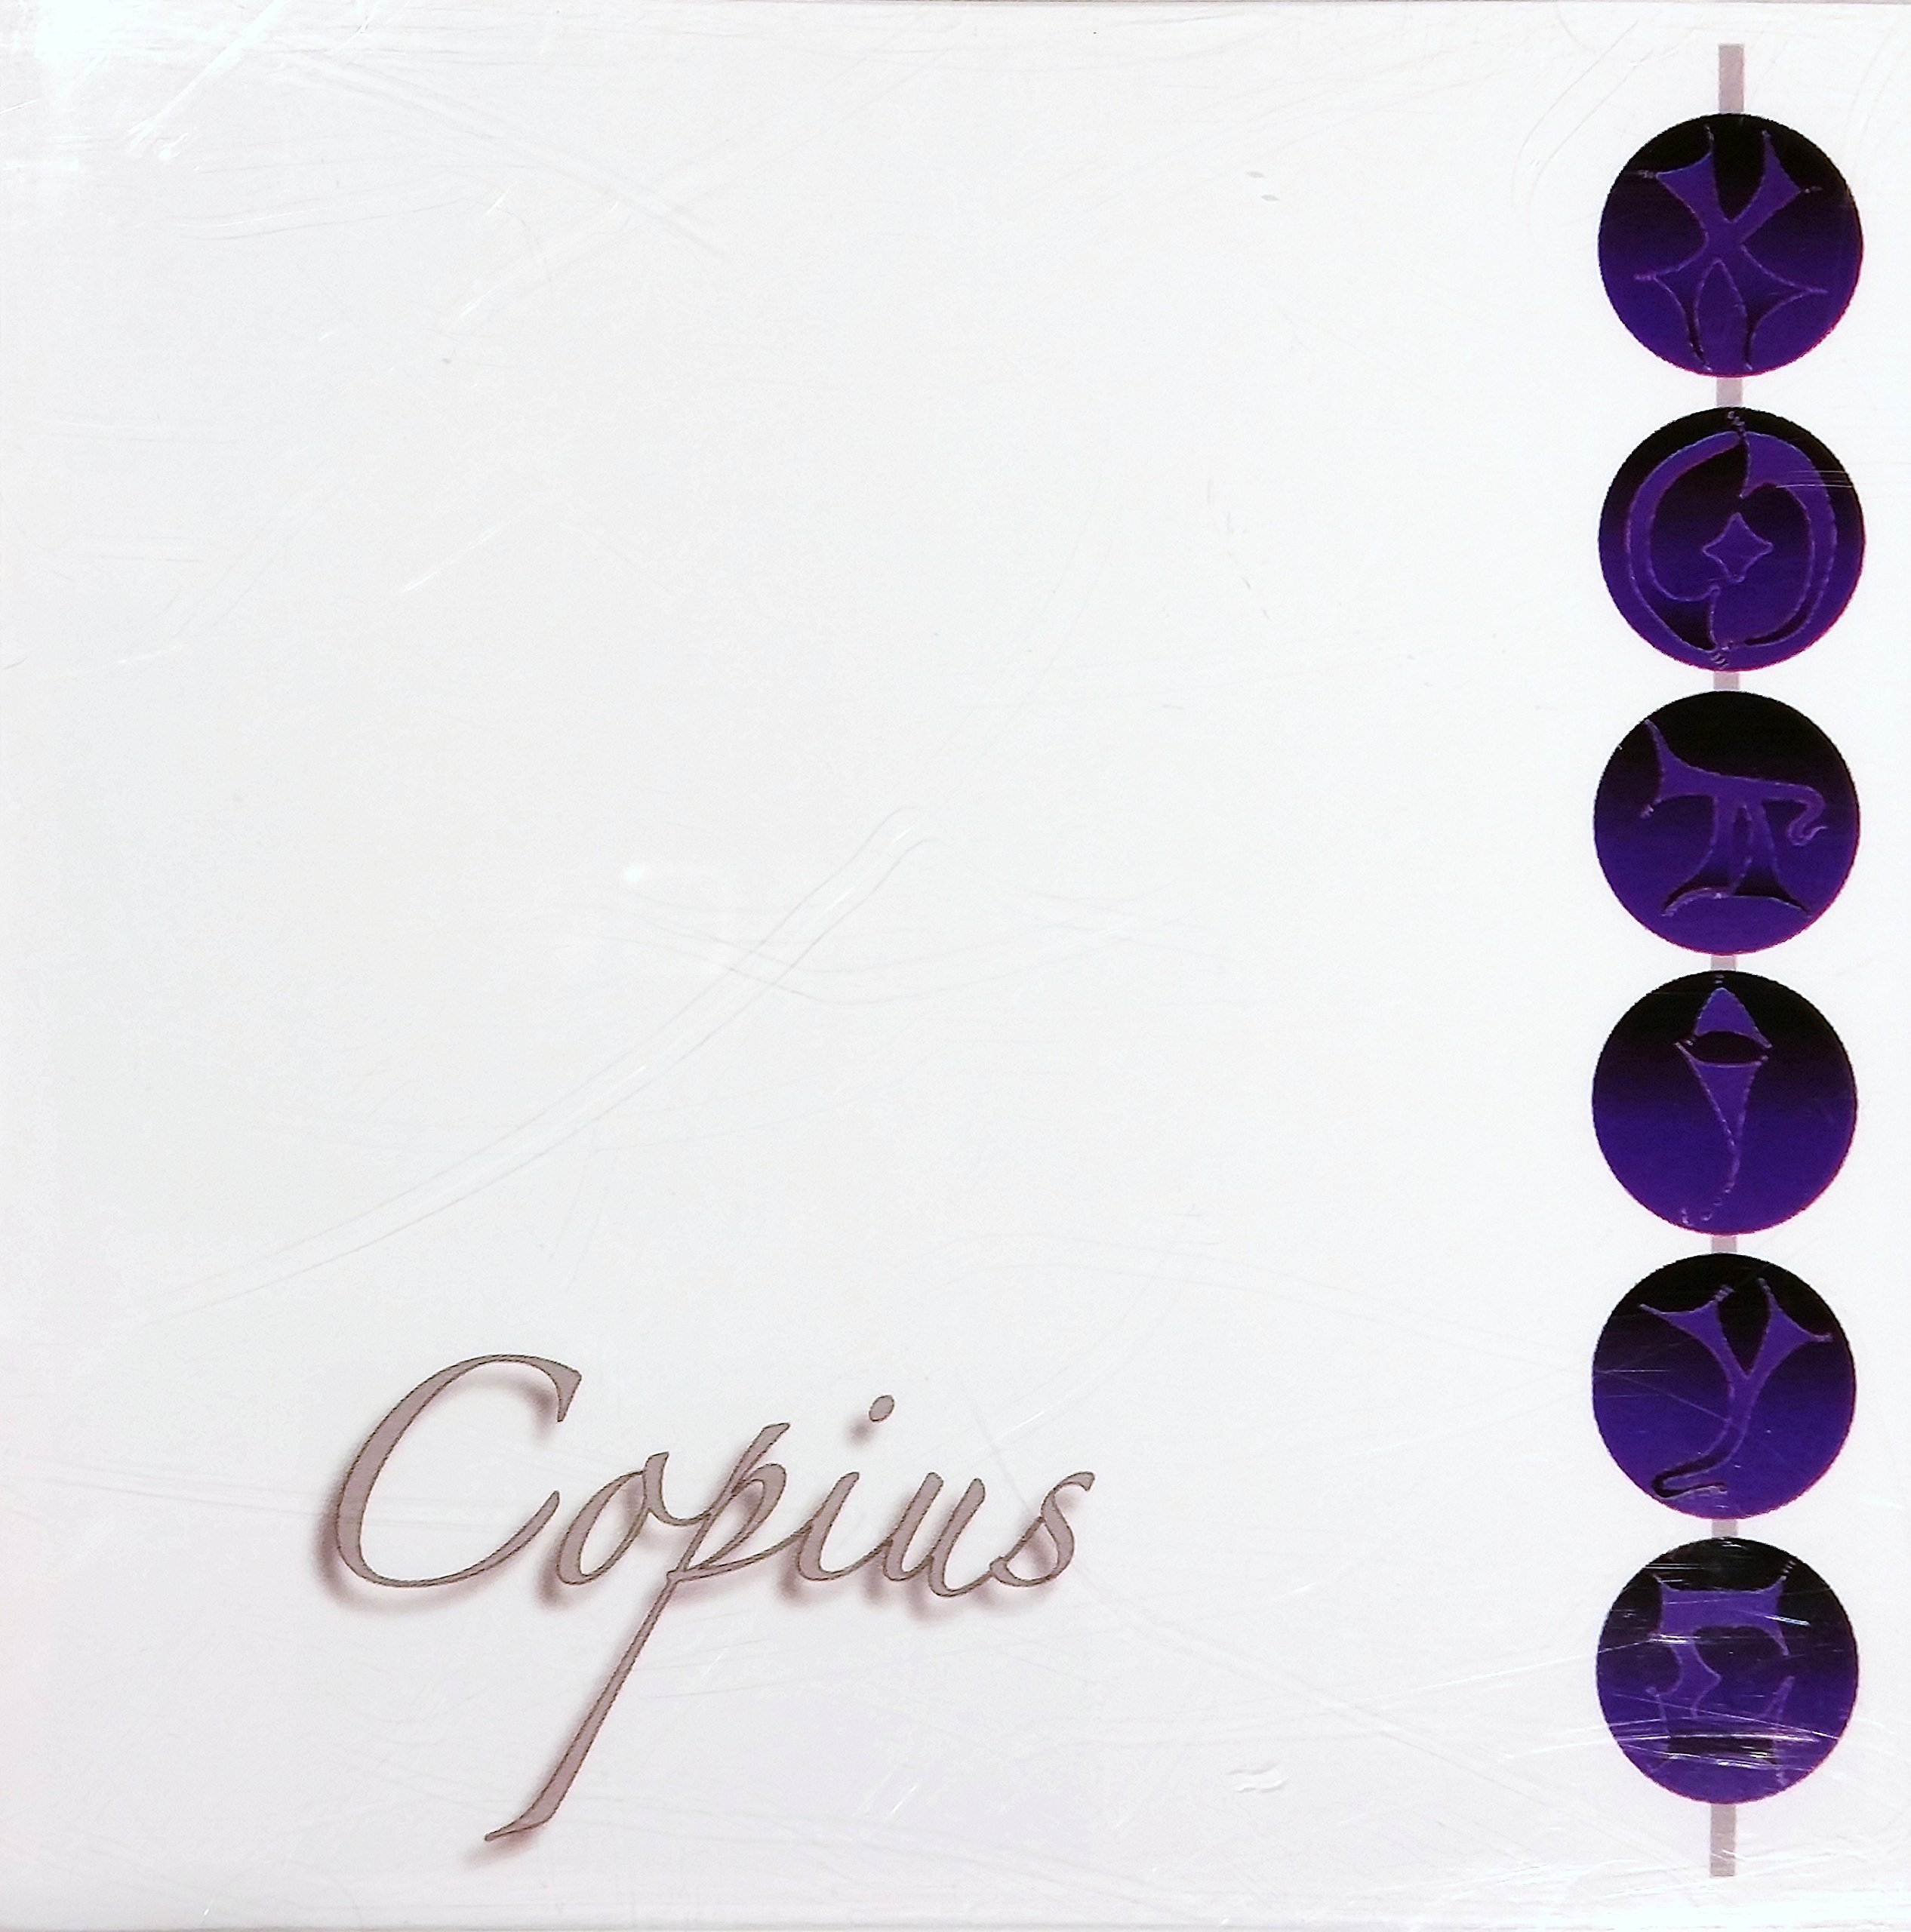 Copius by Copius